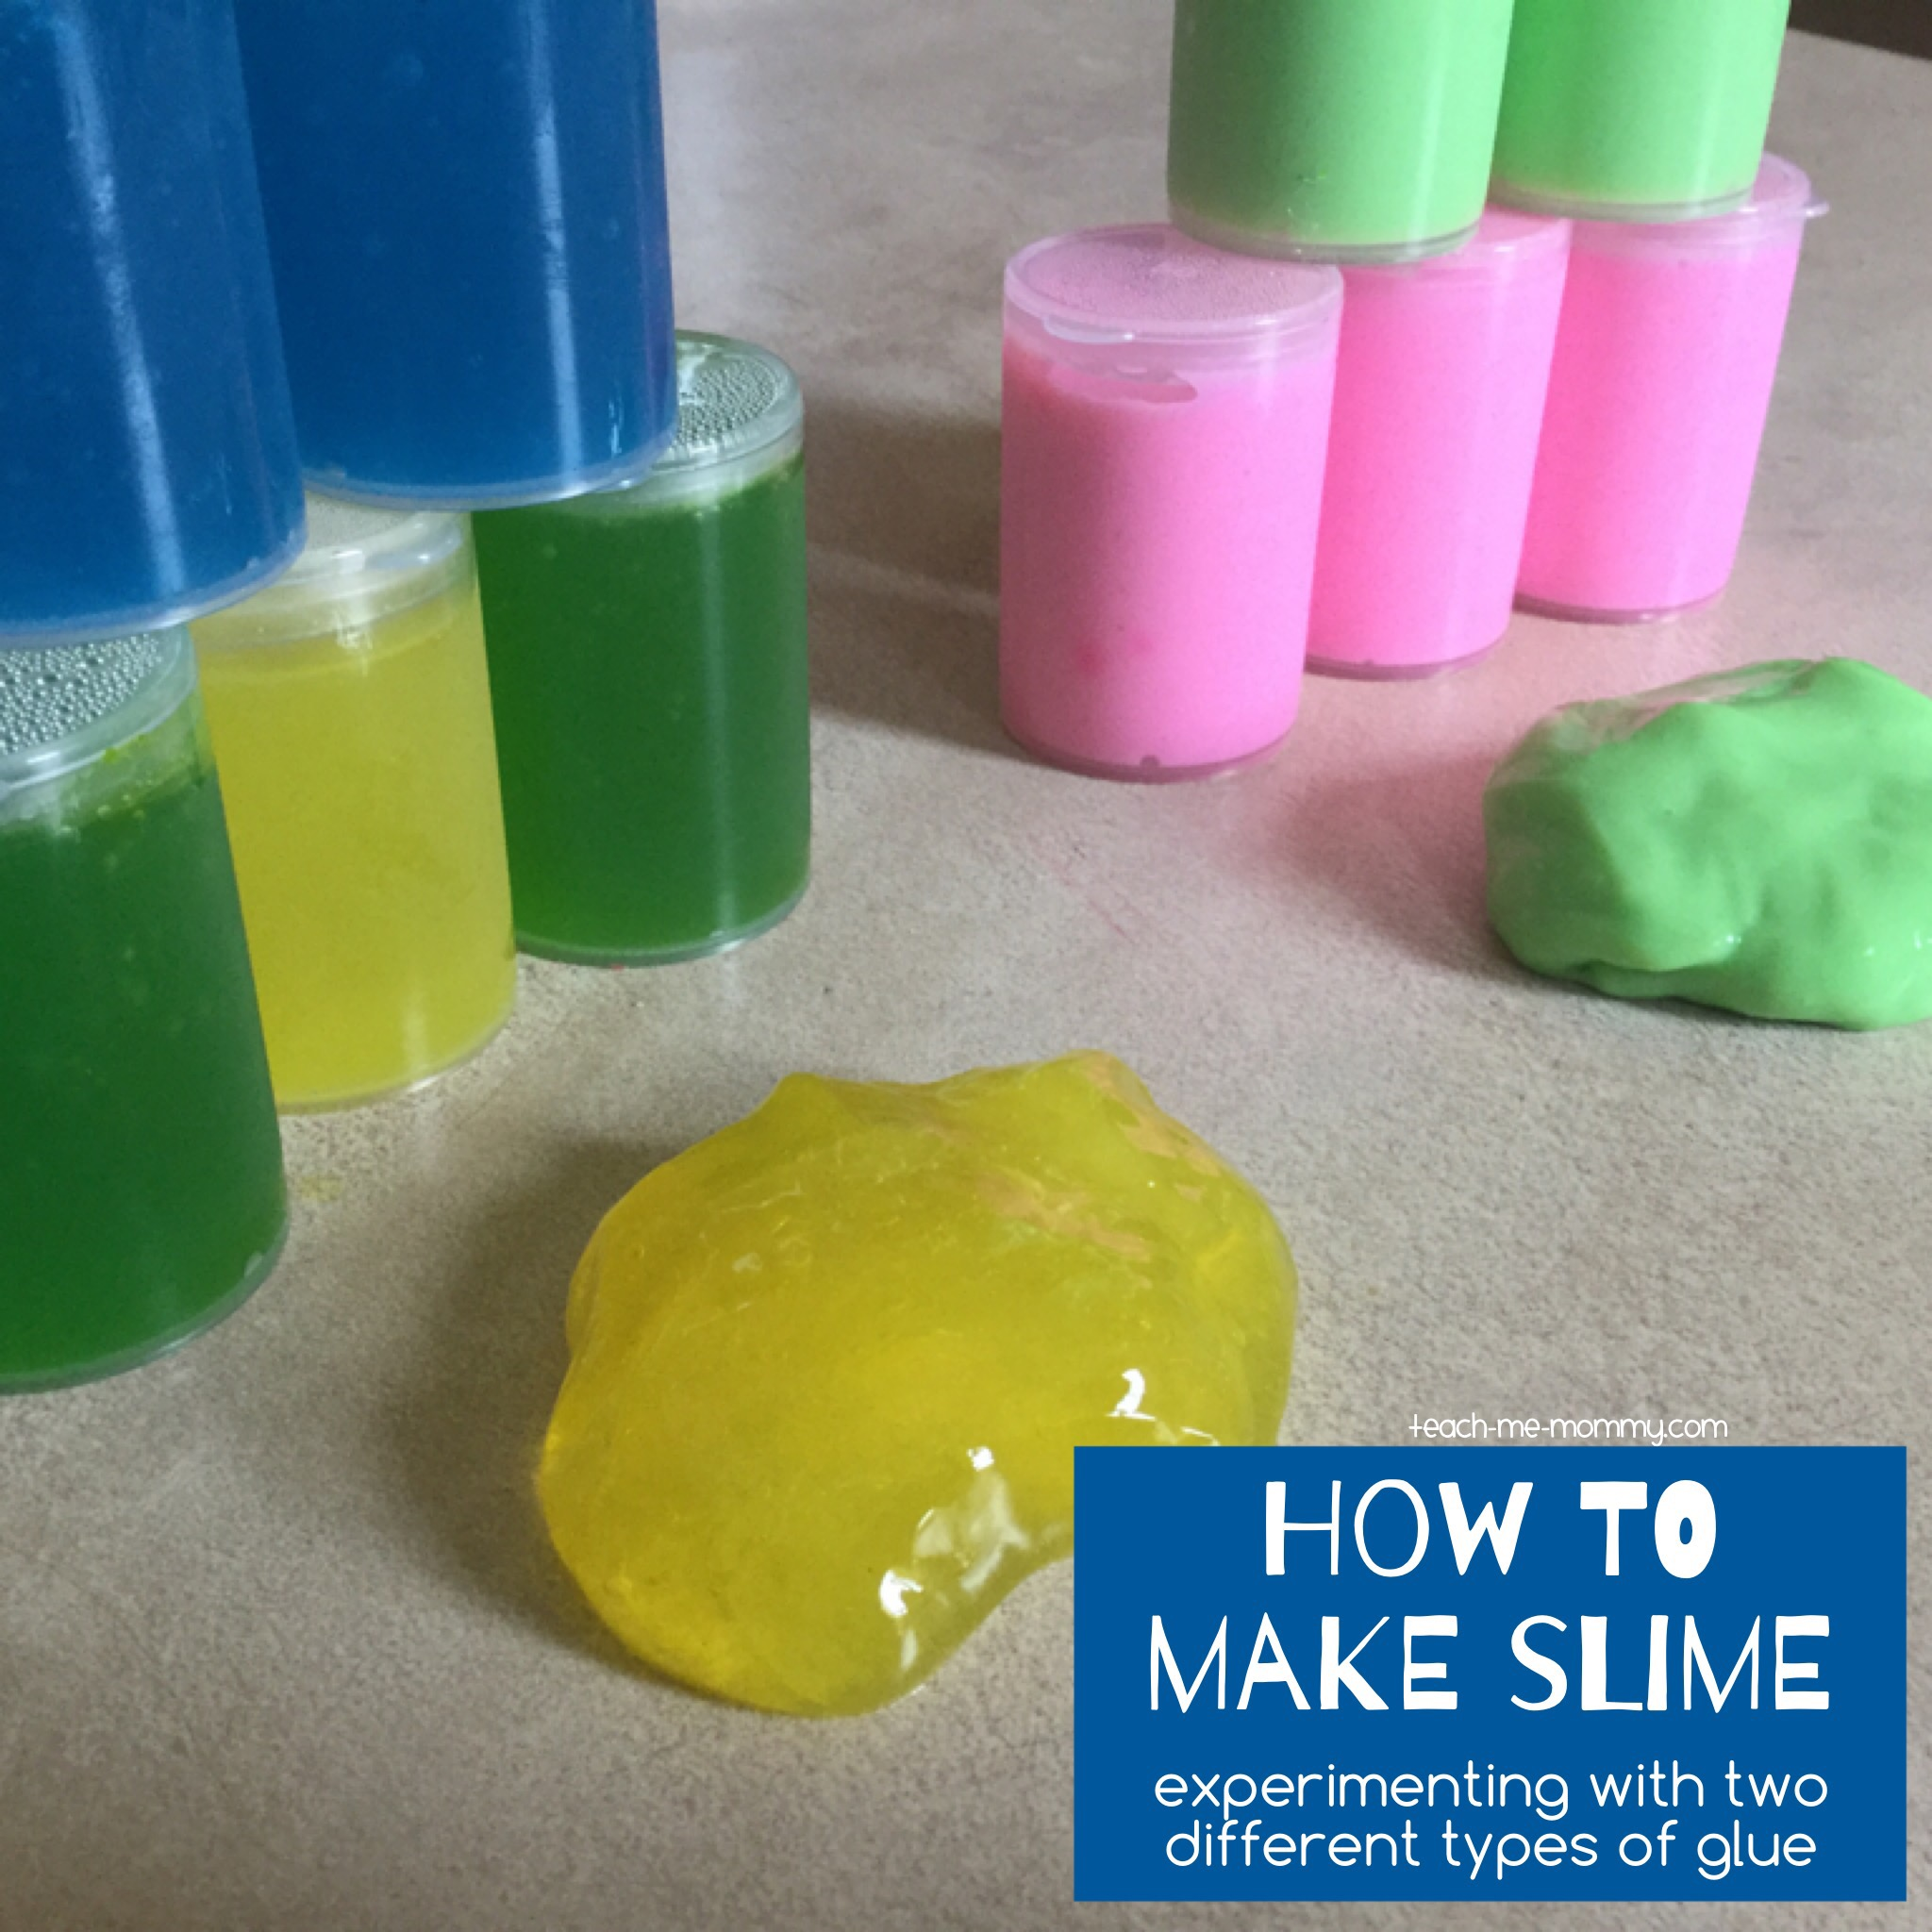 How to make slime teach me mommy make slime ccuart Gallery